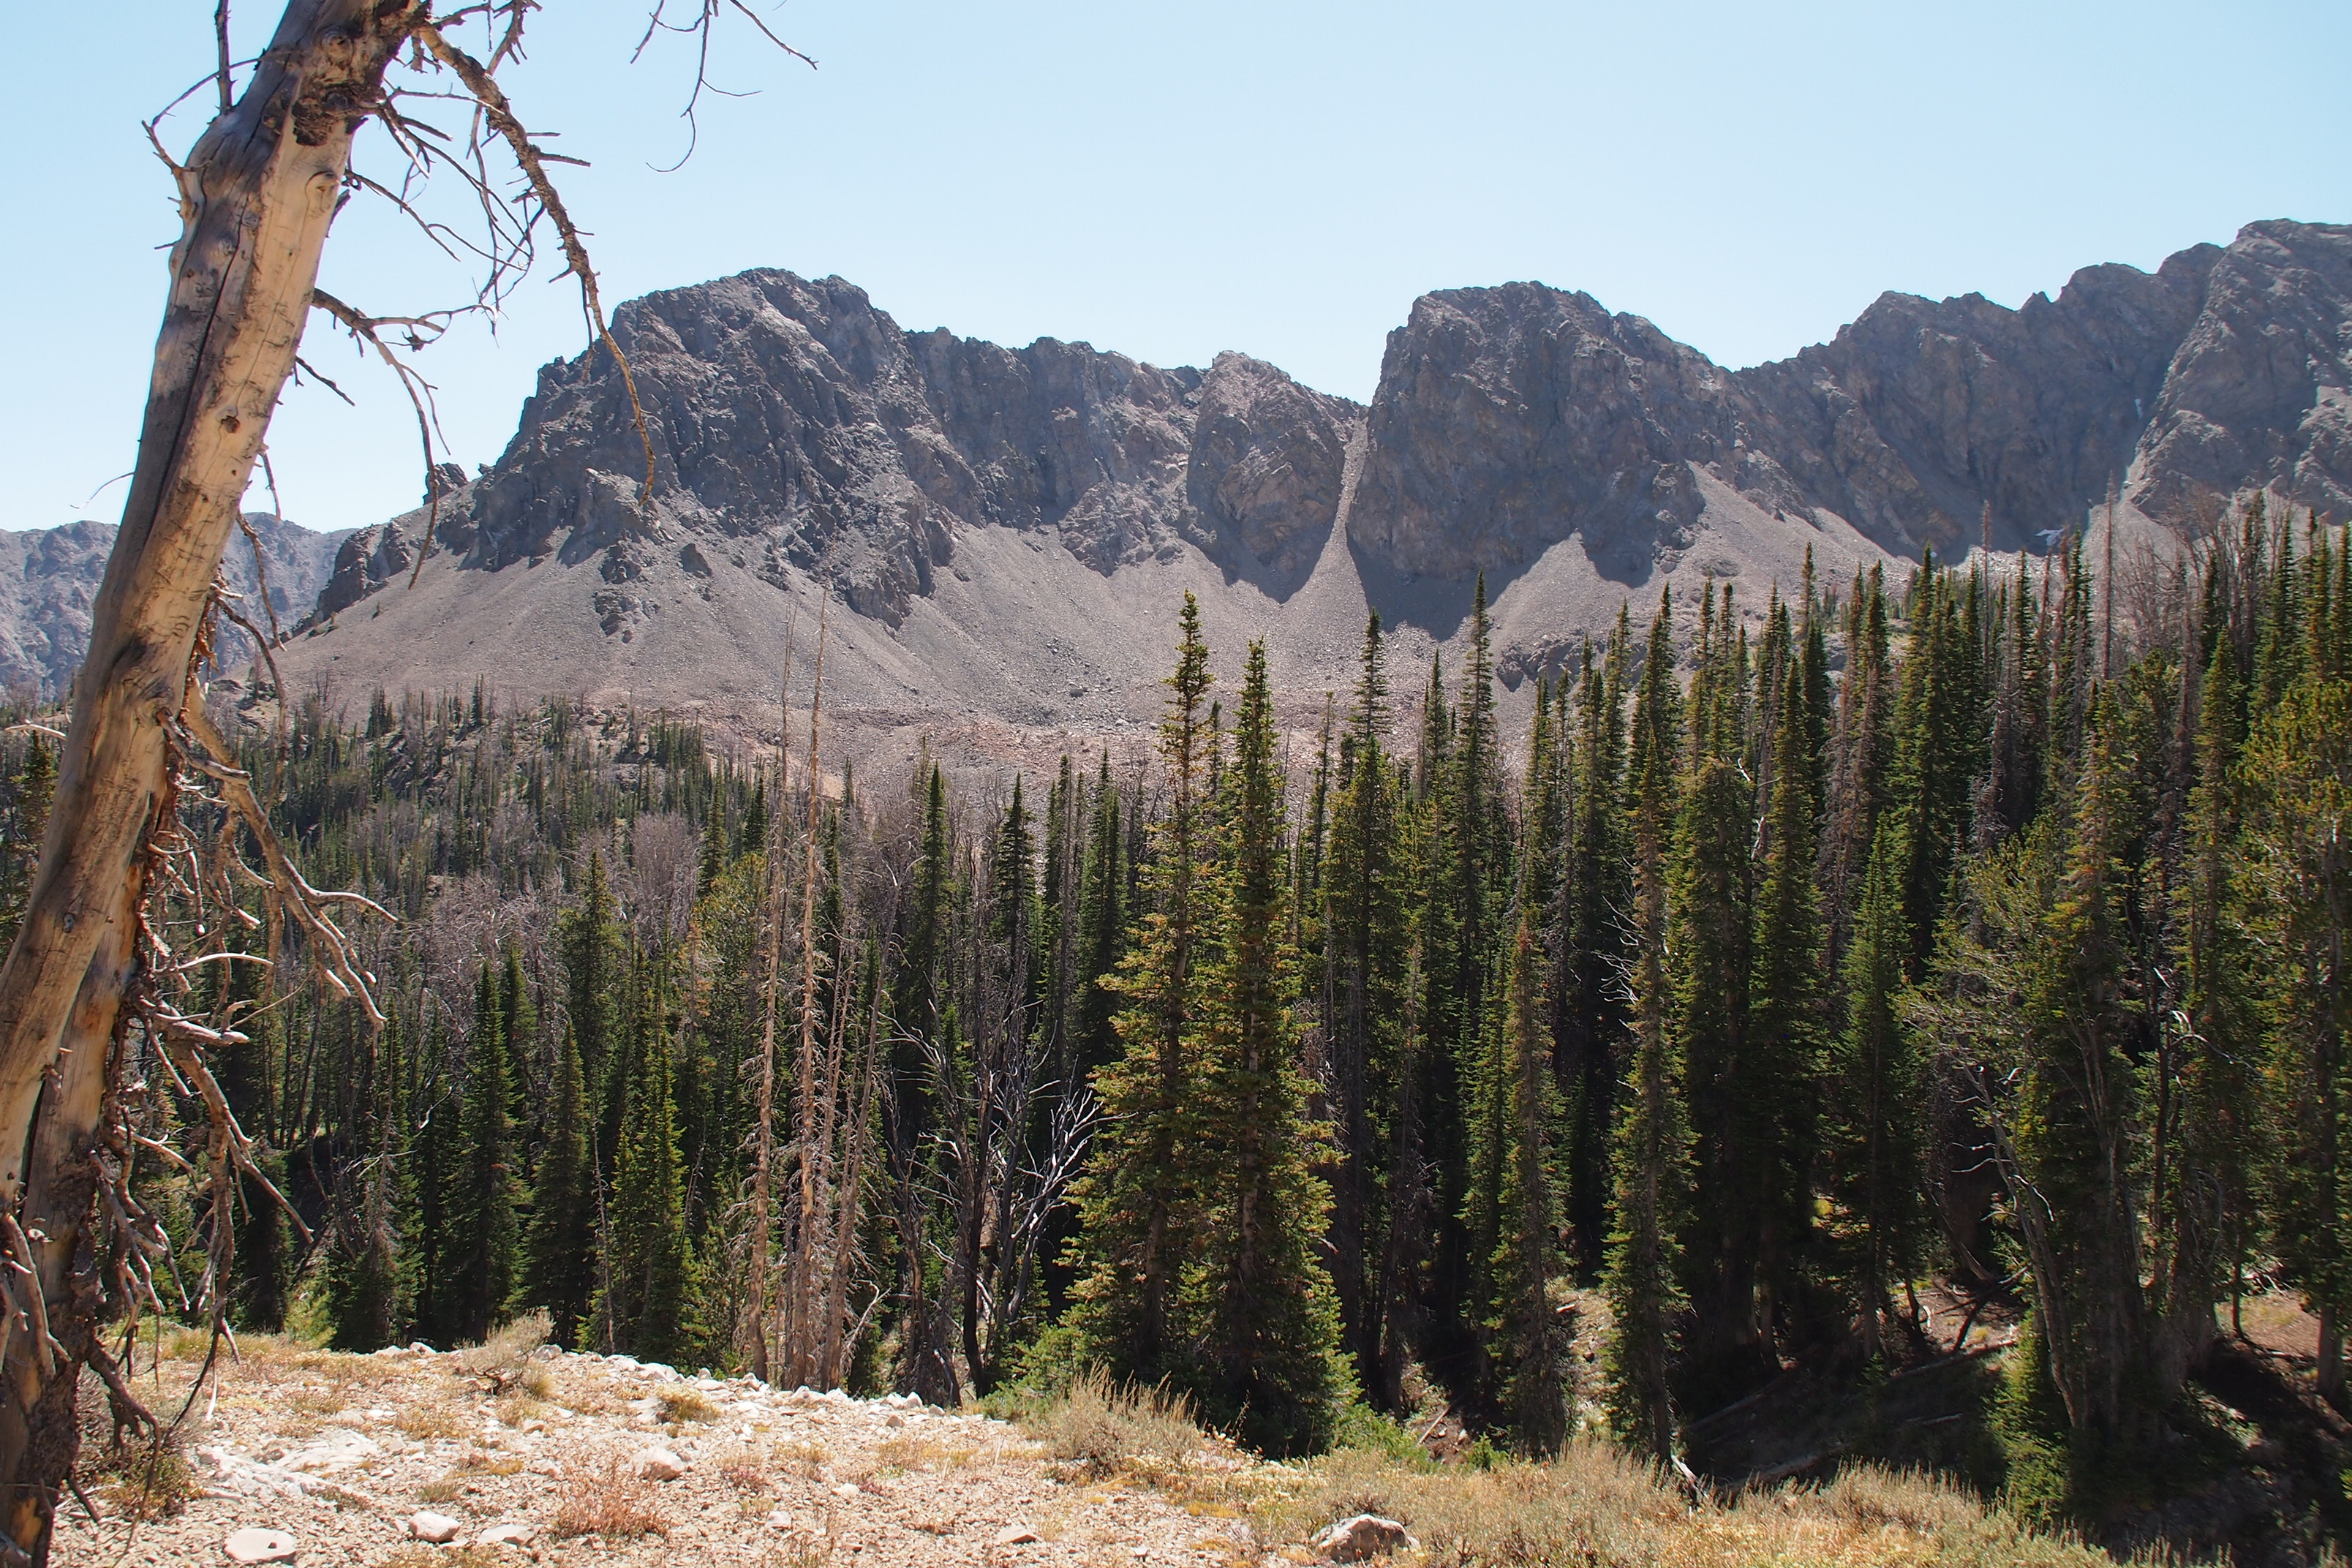 Wood Mountain Elevation : Elevation of id ketchum usa topographic map